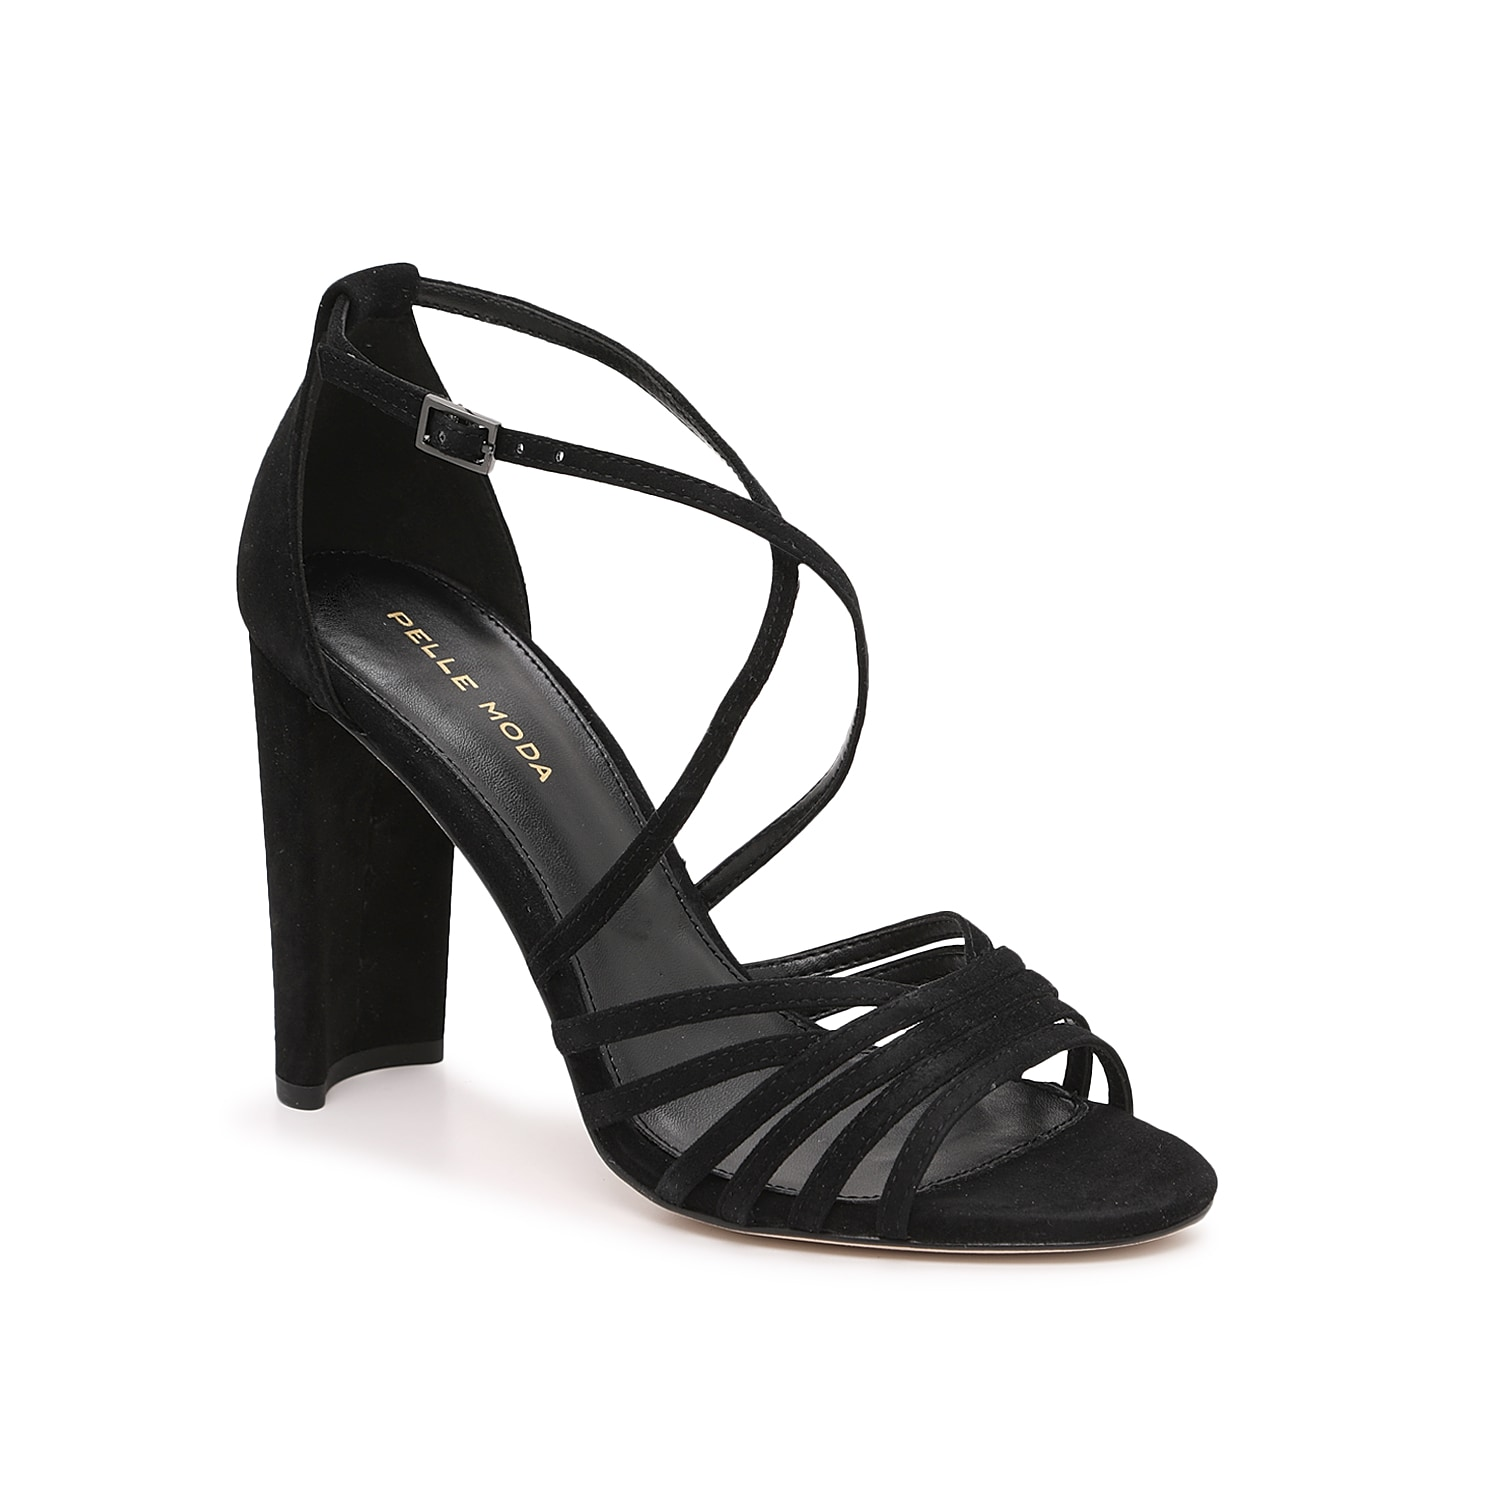 The Huxley sandal from Pelle Moda displays modern curves with a soft almond toe, layered and crossed straps, and a half moon heel that looks blocky from the back. Supple suede elevates this high-quality pair.